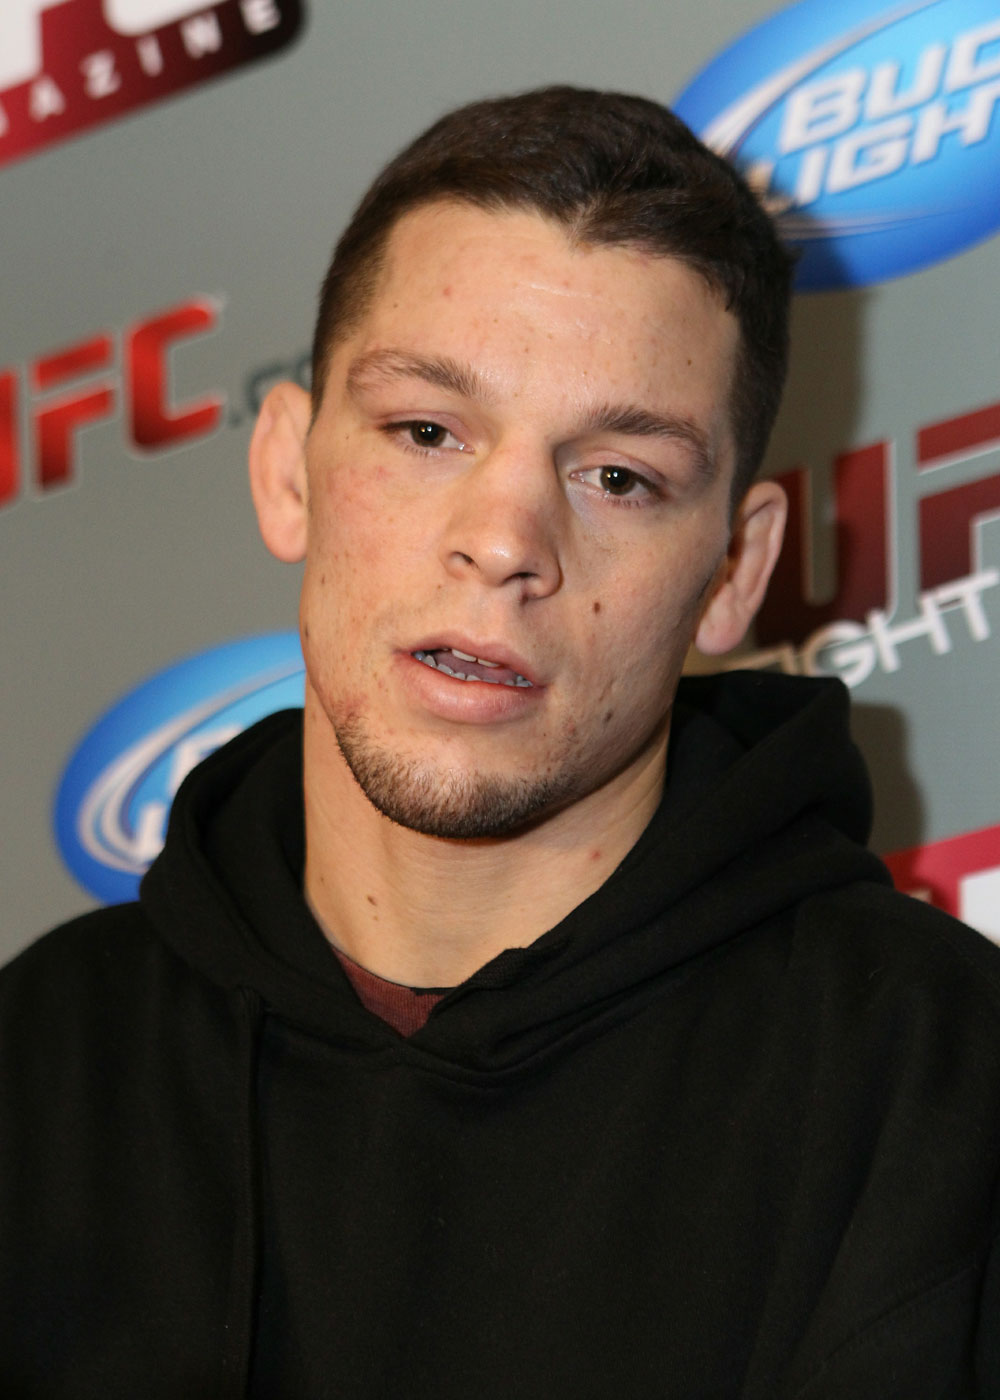 Nate Diaz at the UFC 125 Open Workouts.